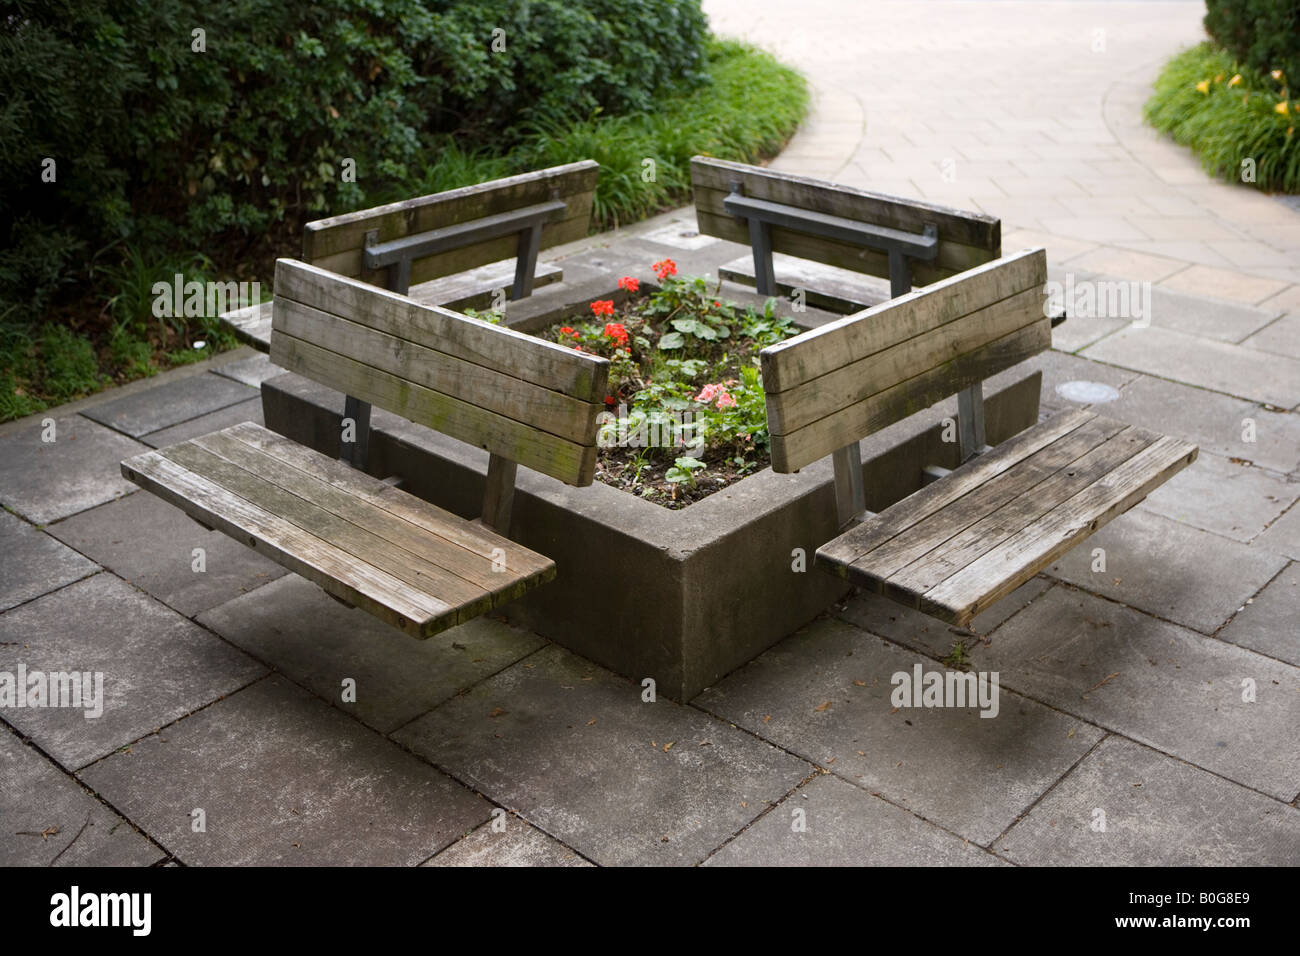 Wooden Benches Around Raised Flower Bed Hospital Palmerston North New  Zealand